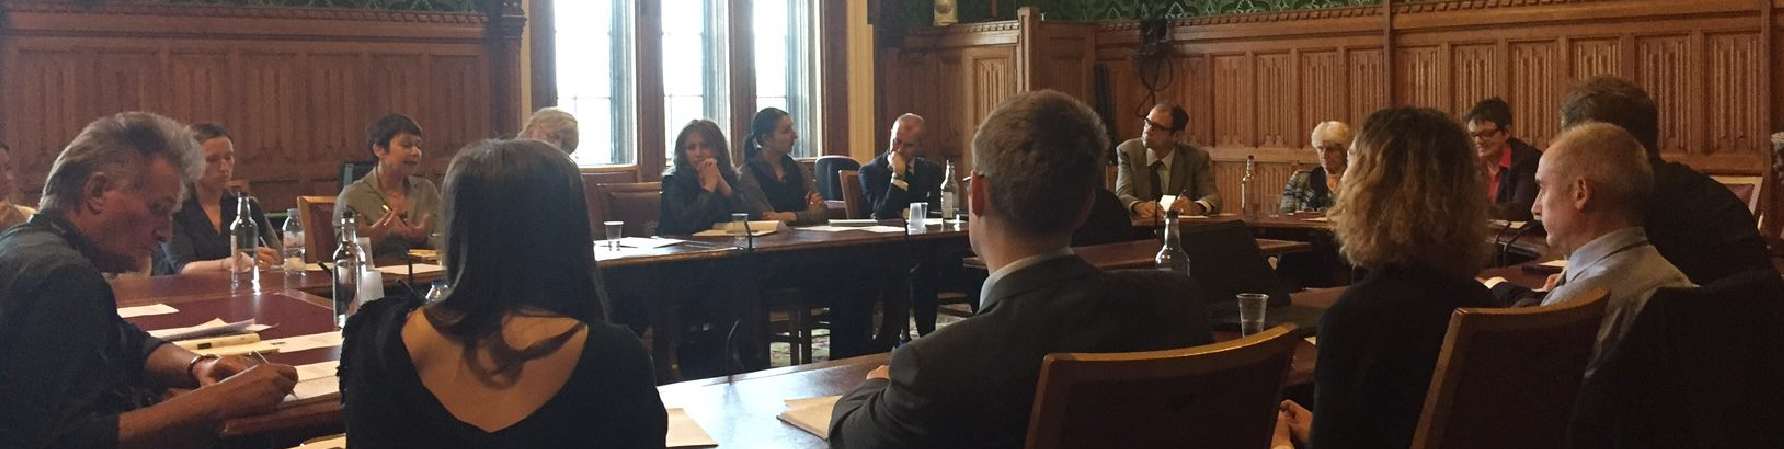 APPG photo cropped 3.png